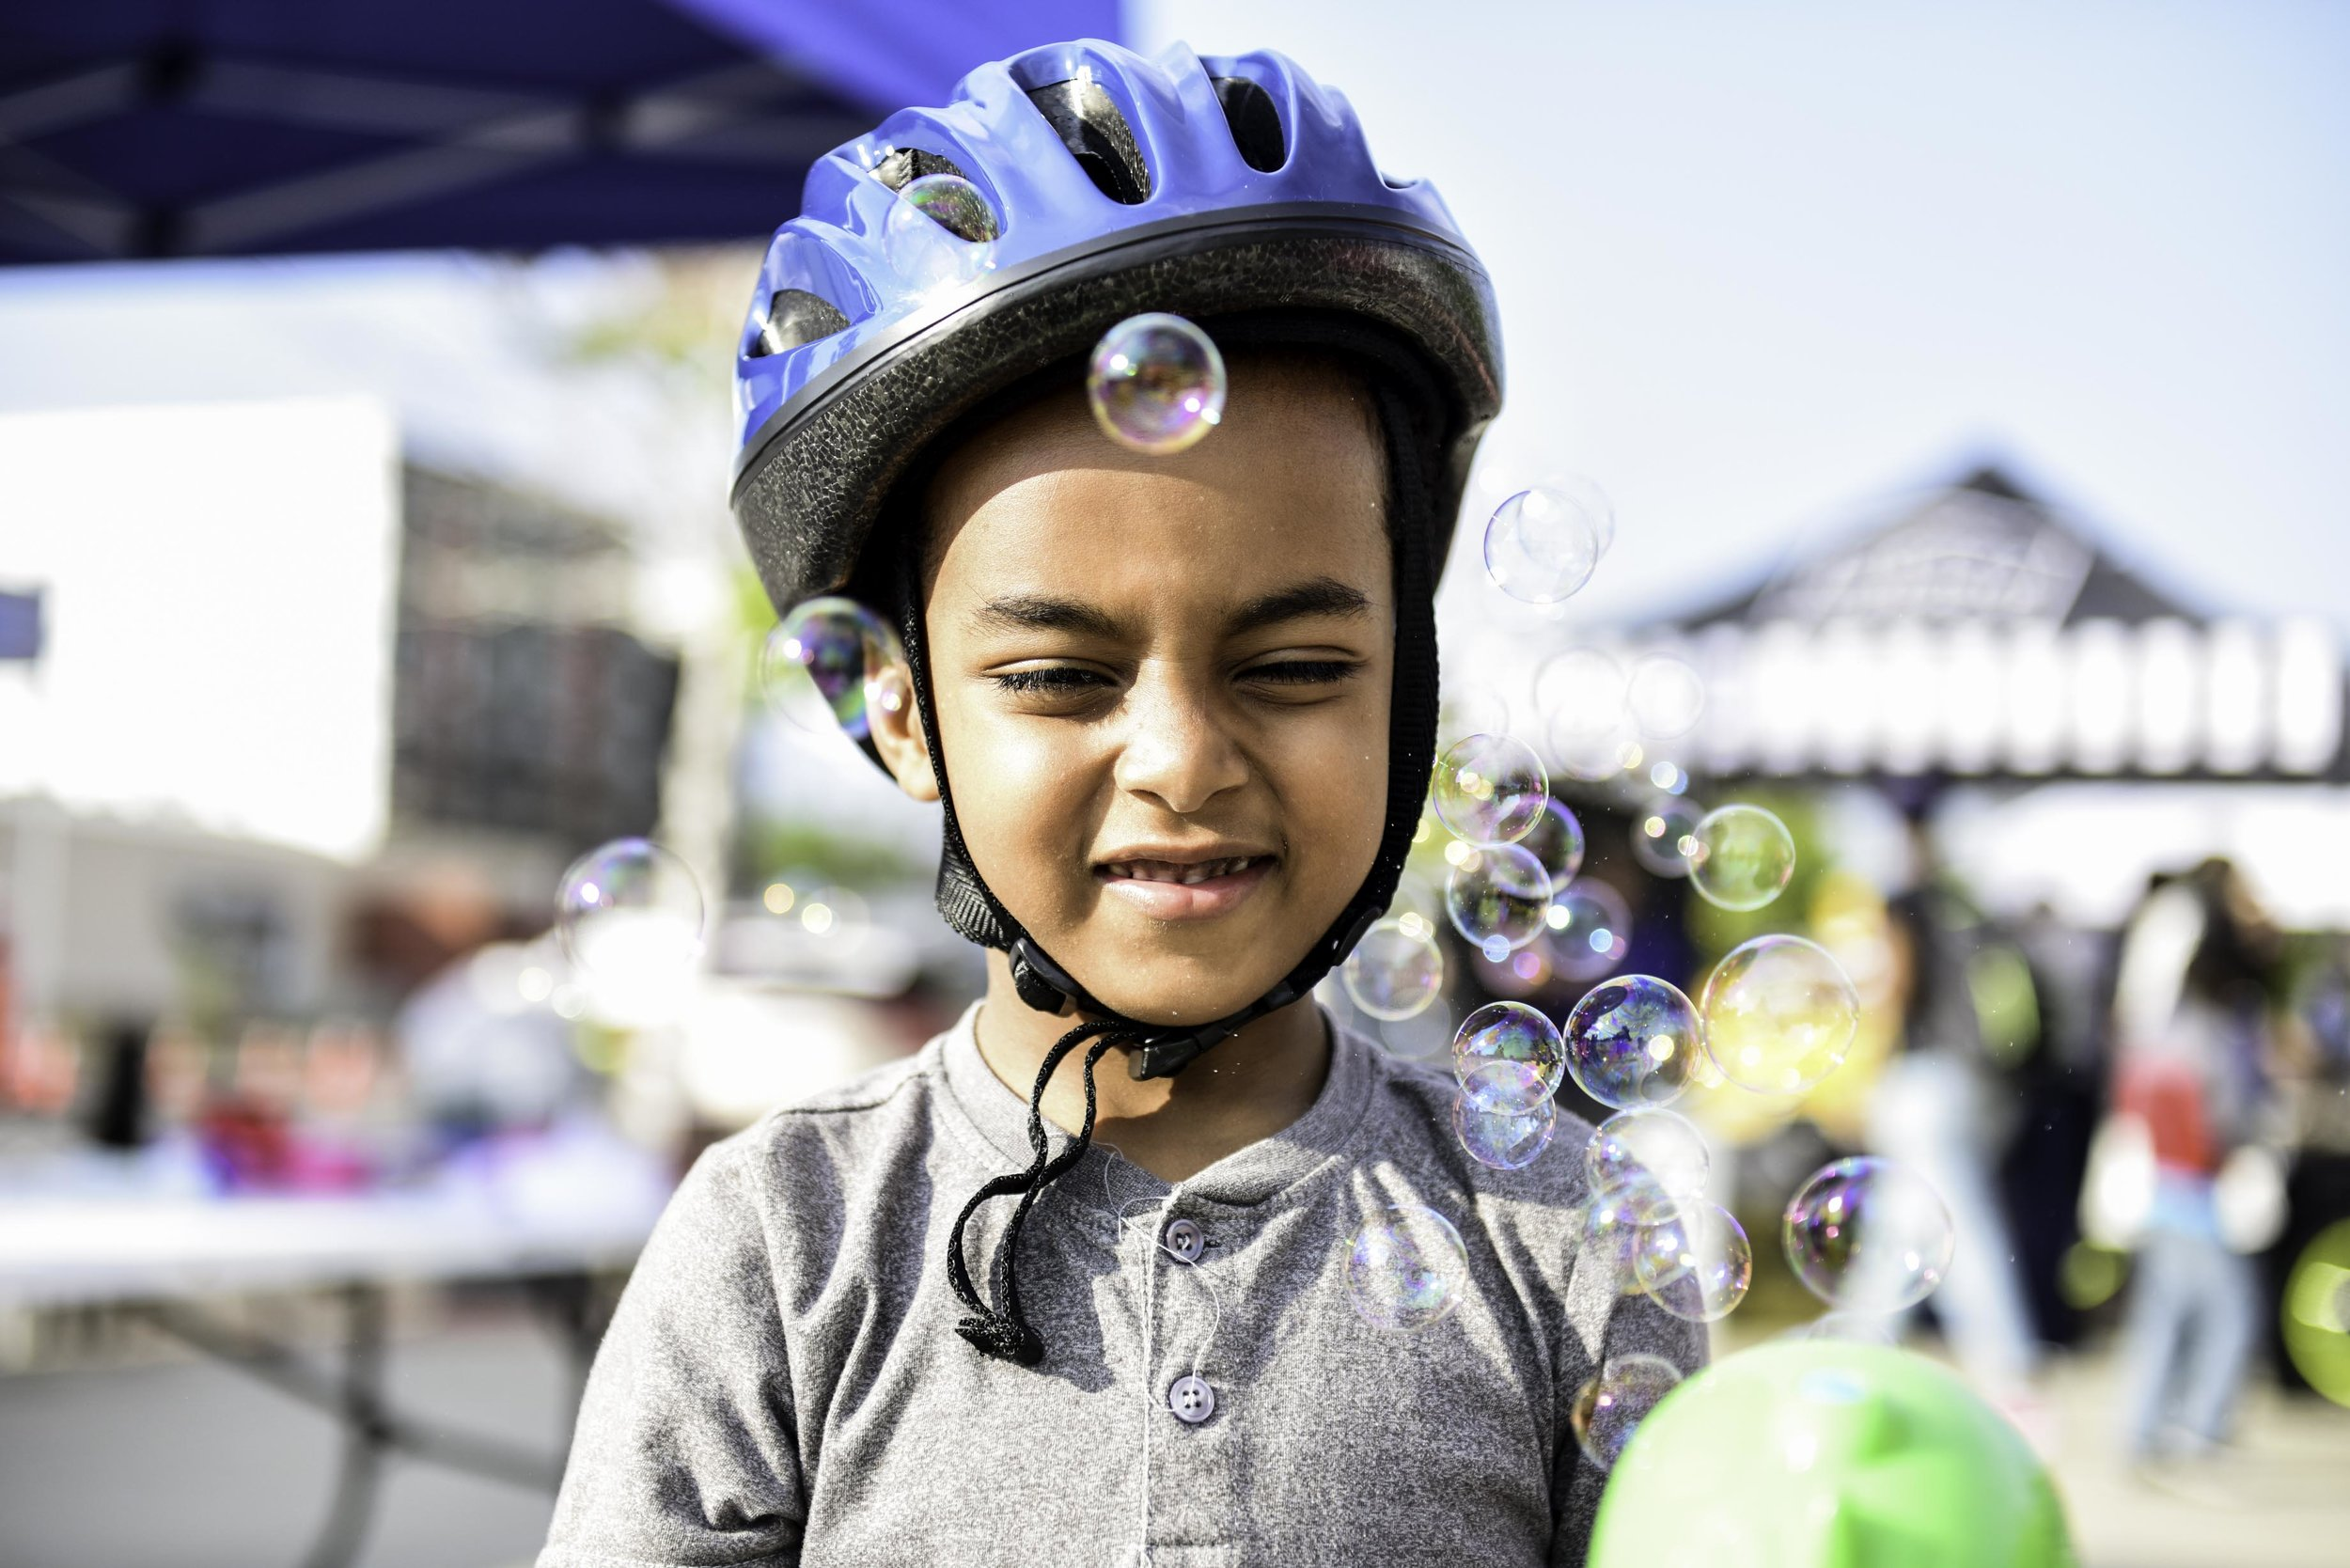 The Mayor's Ride is FREE and open to kids of all ages! -